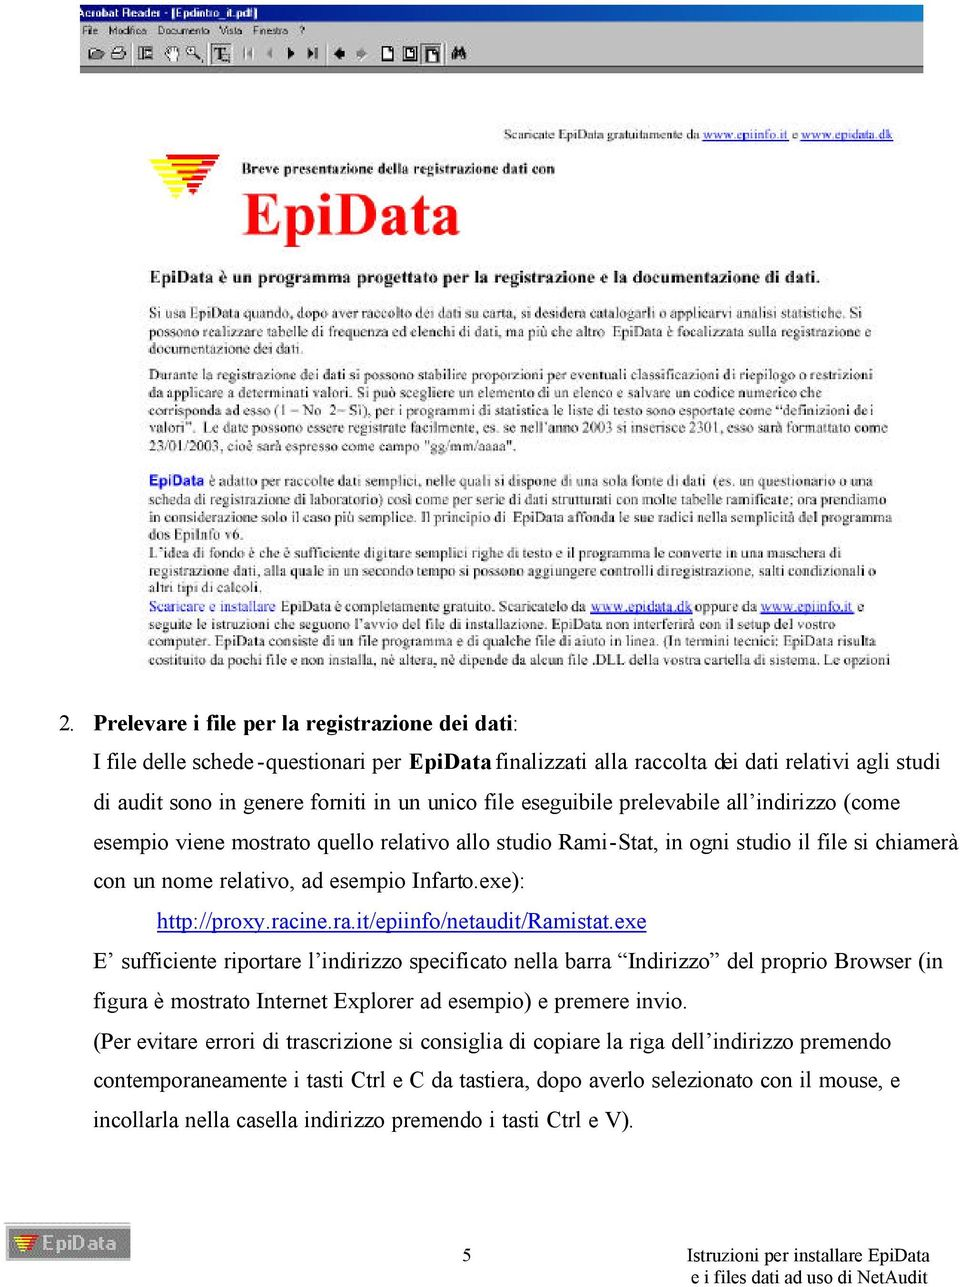 racine.ra.it/epiinfo/netaudit/ramistat.